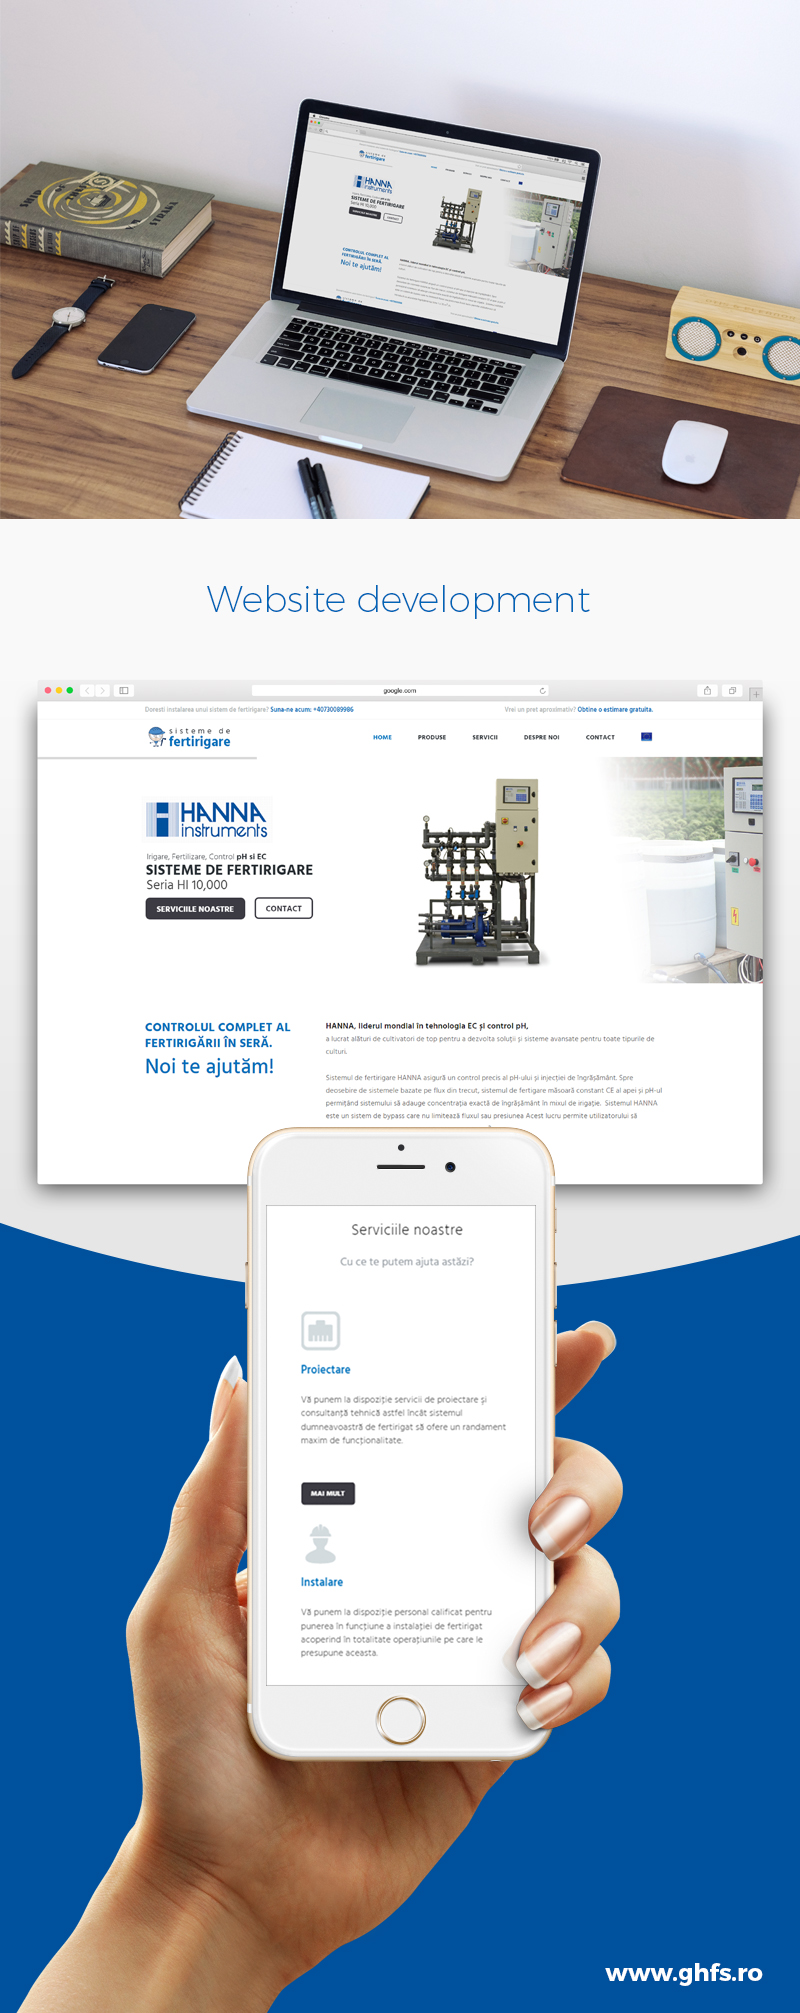 Ghfs Webdesign and Web Development Project